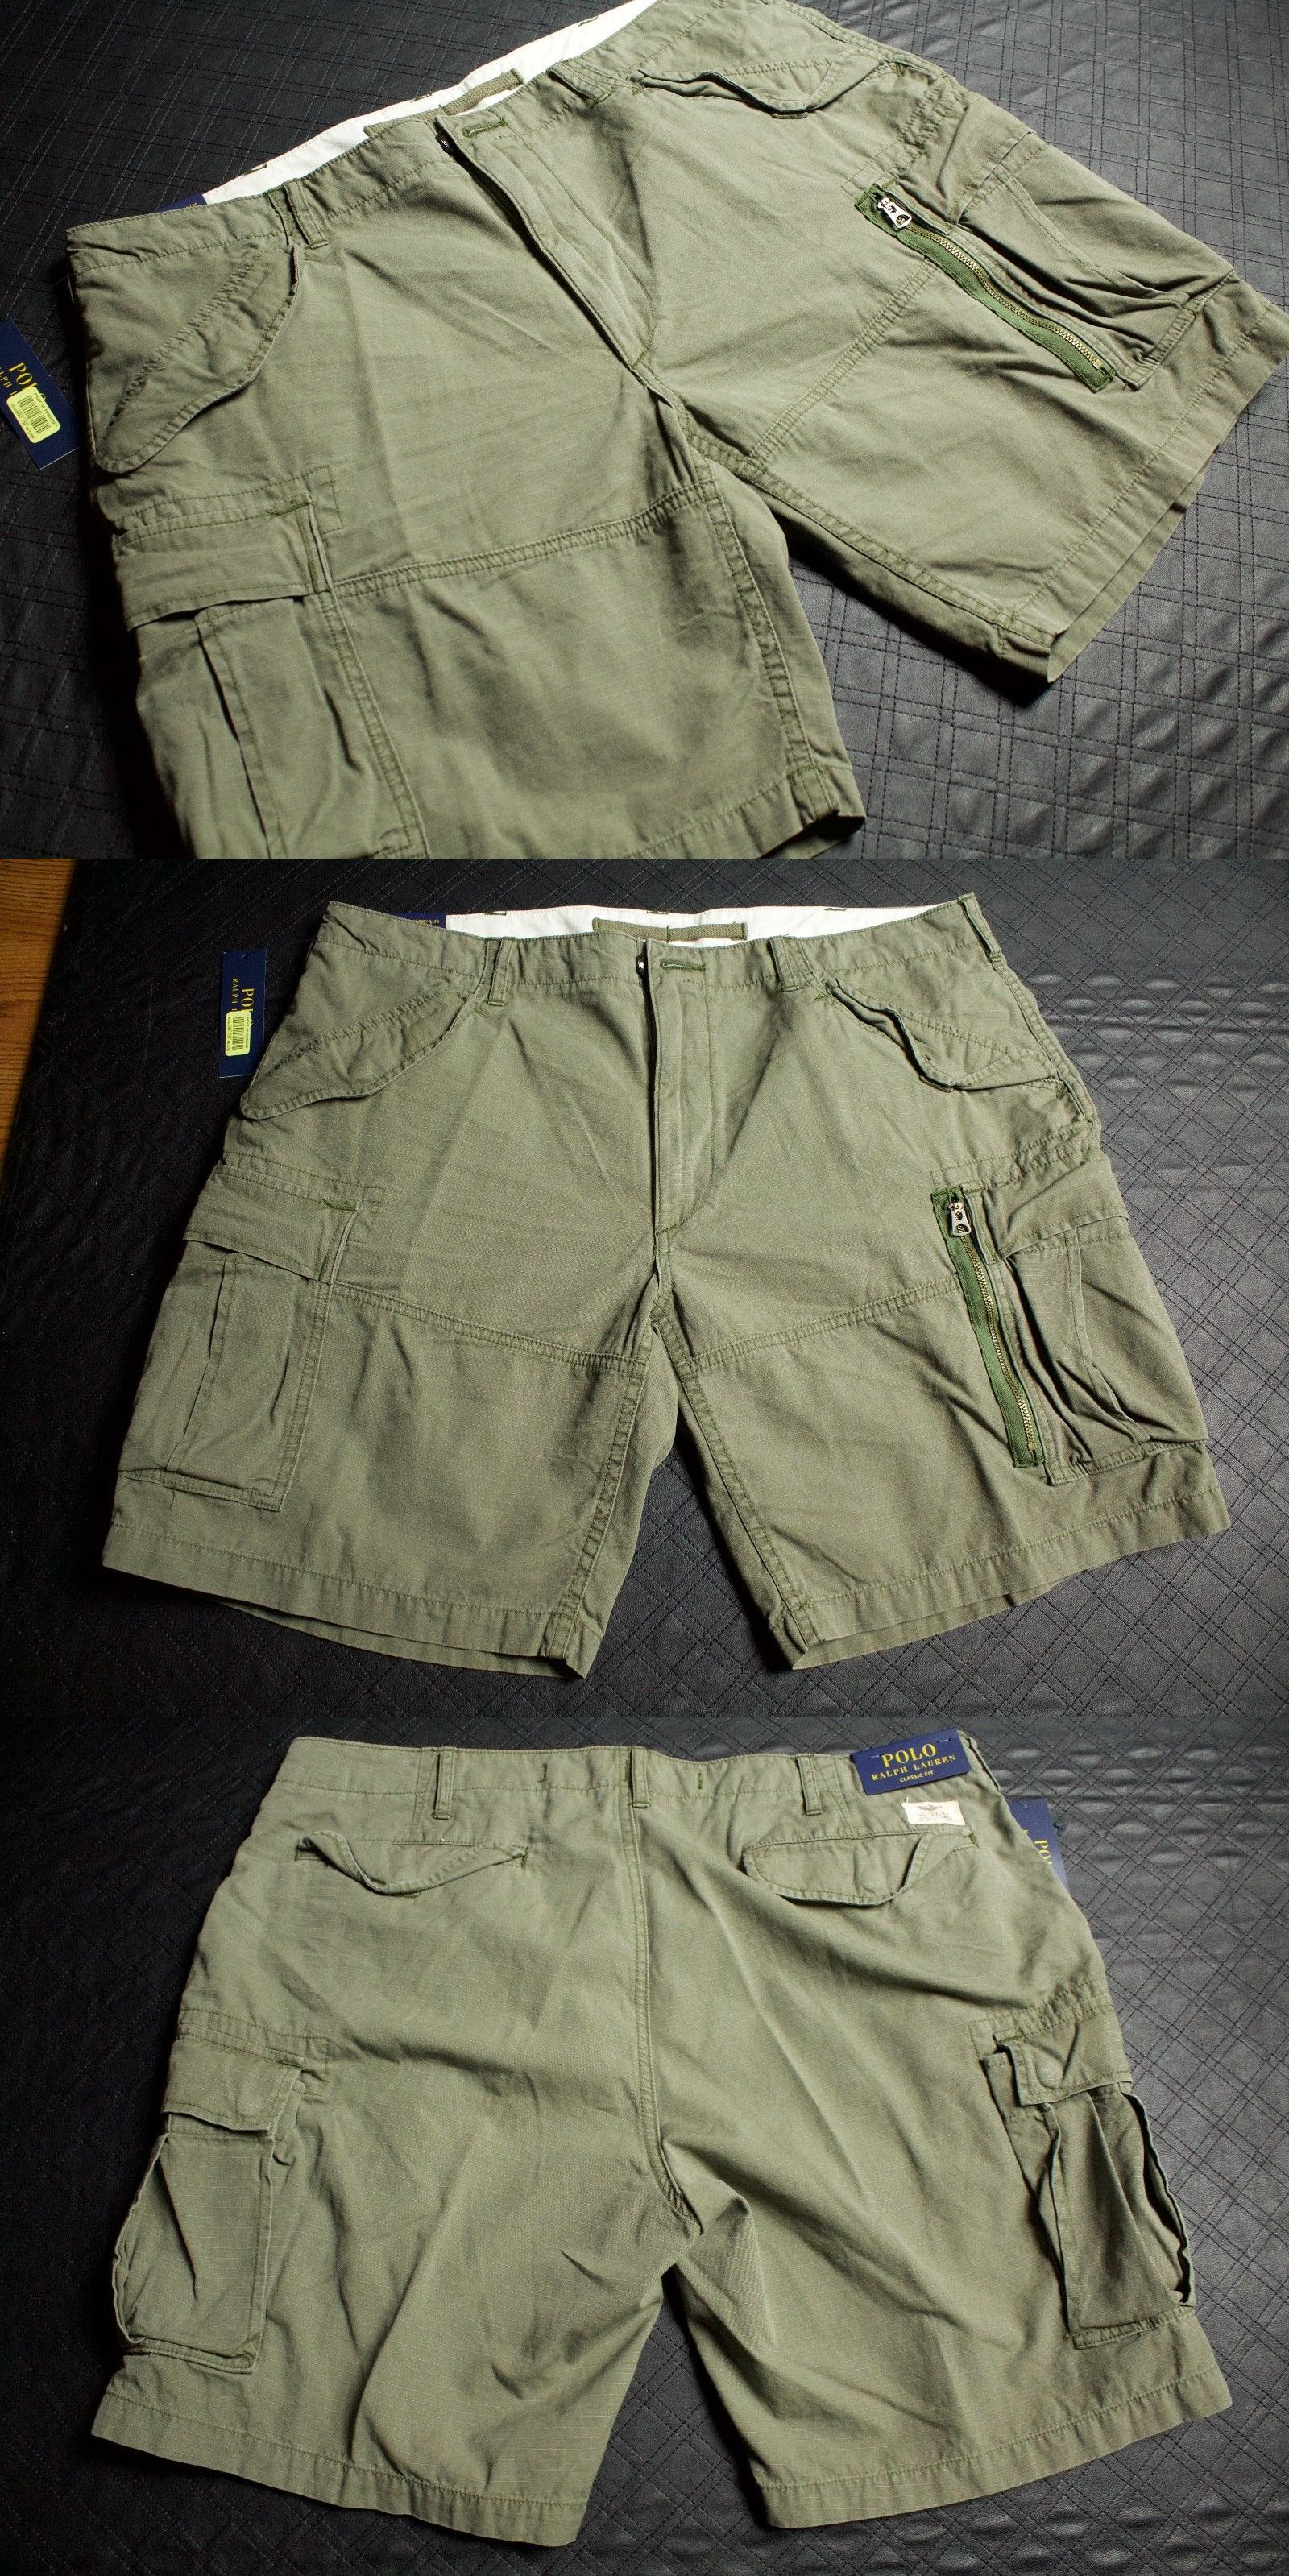 7e24900429 Shorts 15689: Polo Ralph Lauren Classic Fit Utility Ripstop Olive Cargo  Shorts Size S 38